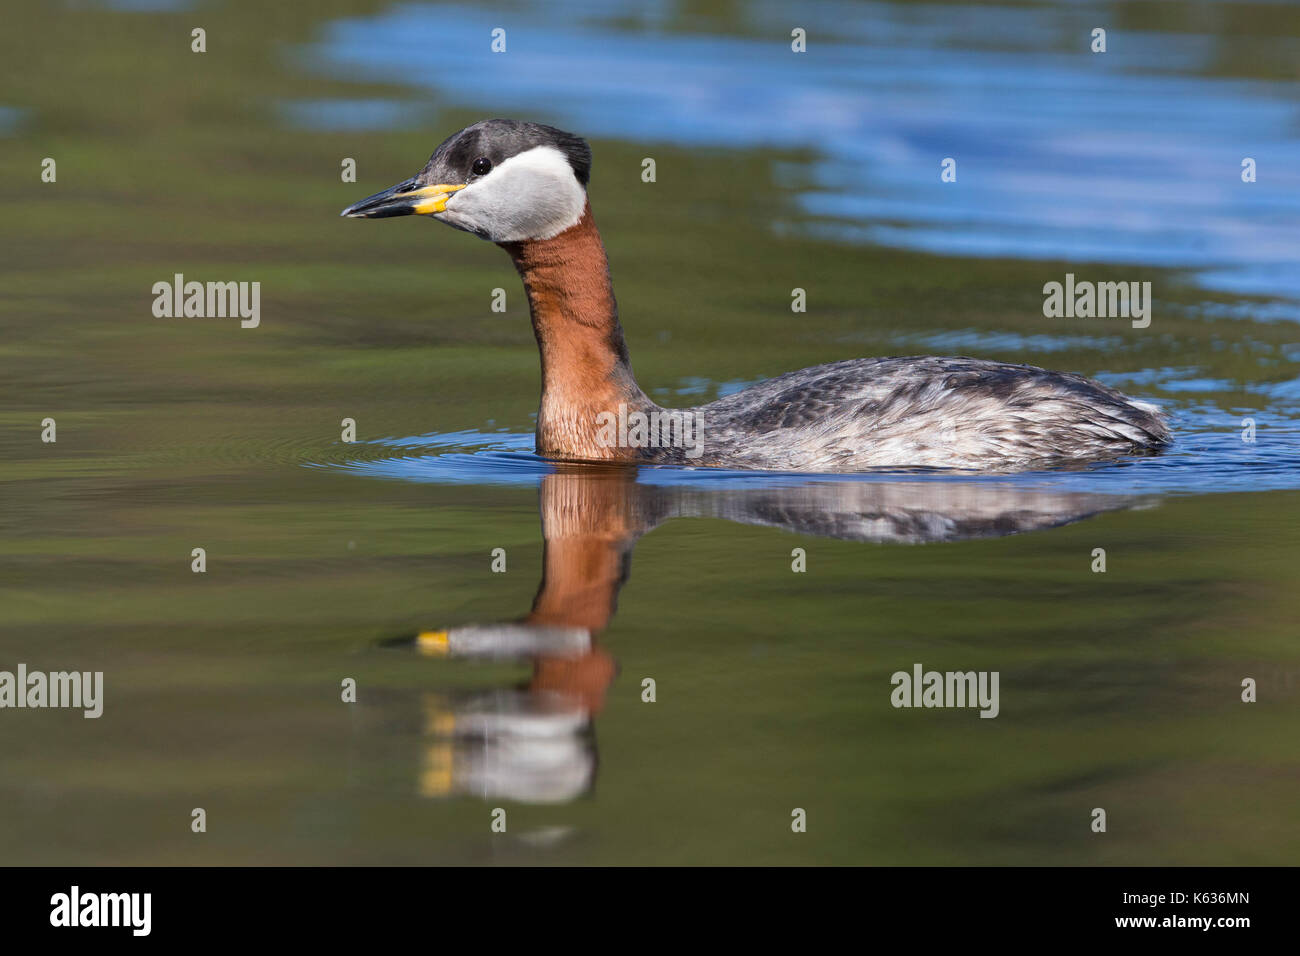 Red-necked Grebe (Podiceps grisegena), adult swimming in a lake - Stock Image